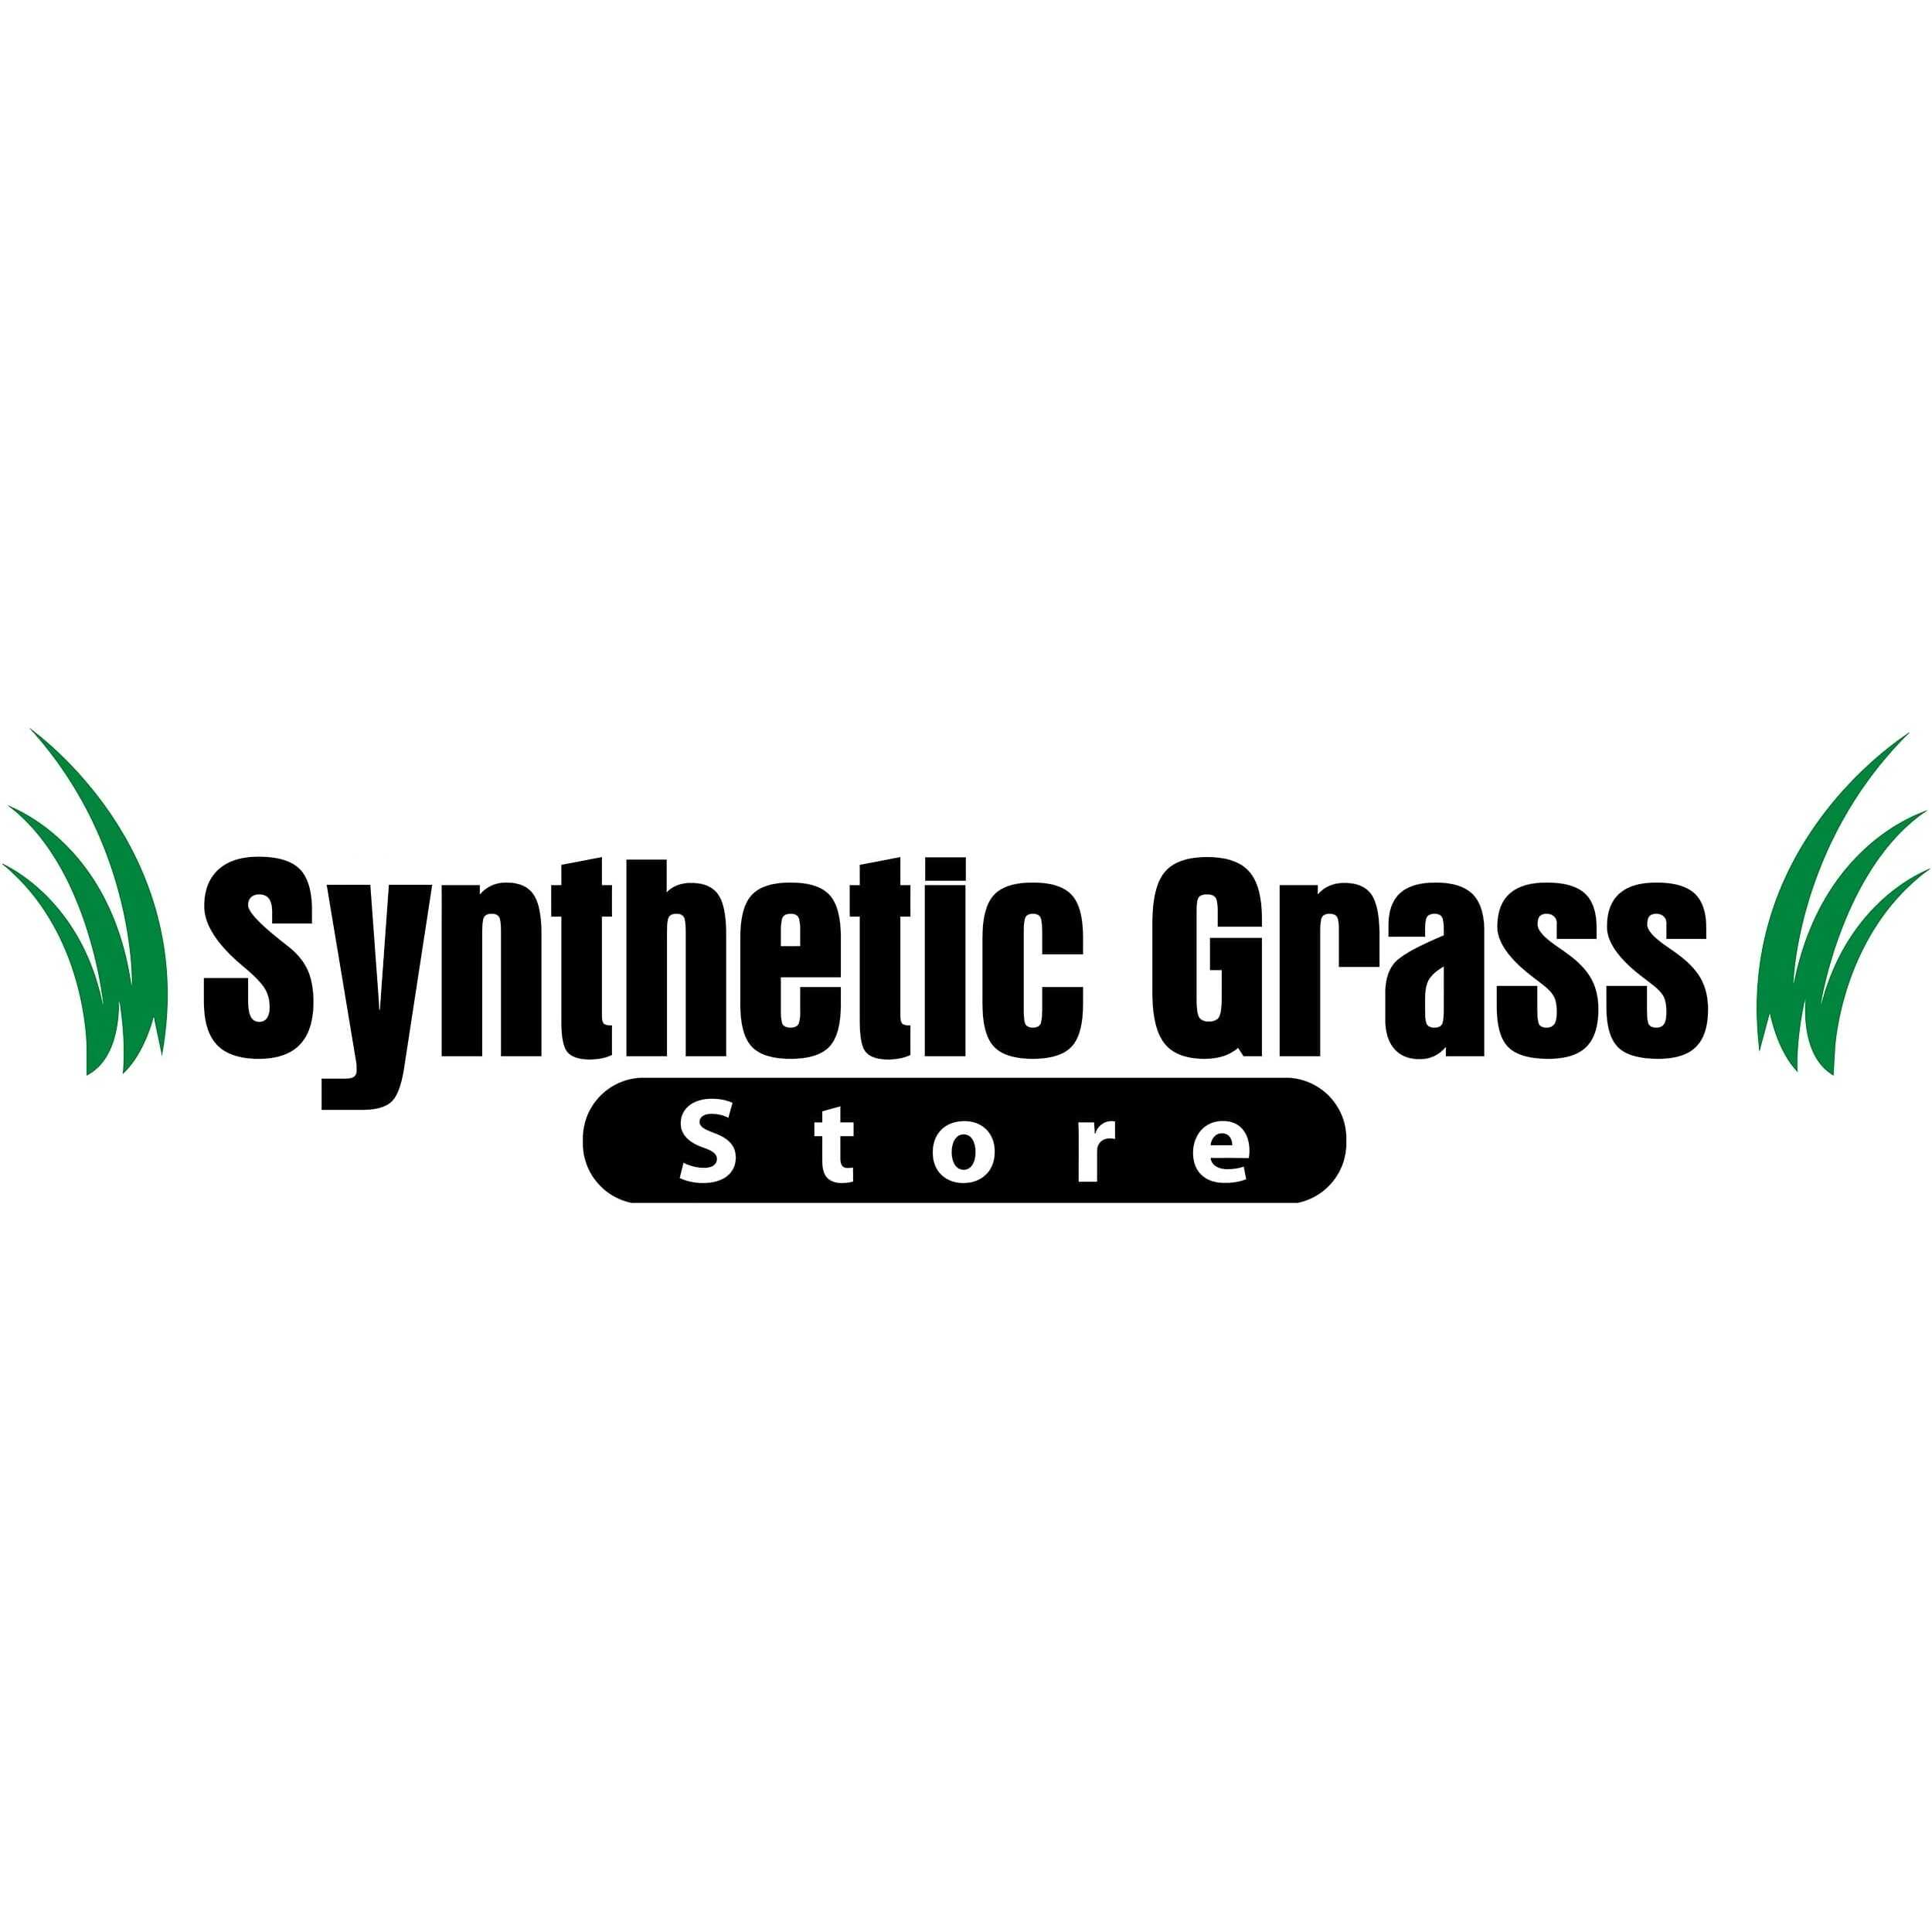 Synthetic Grass Store of California - Anaheim, CA - Landscape Architects & Design